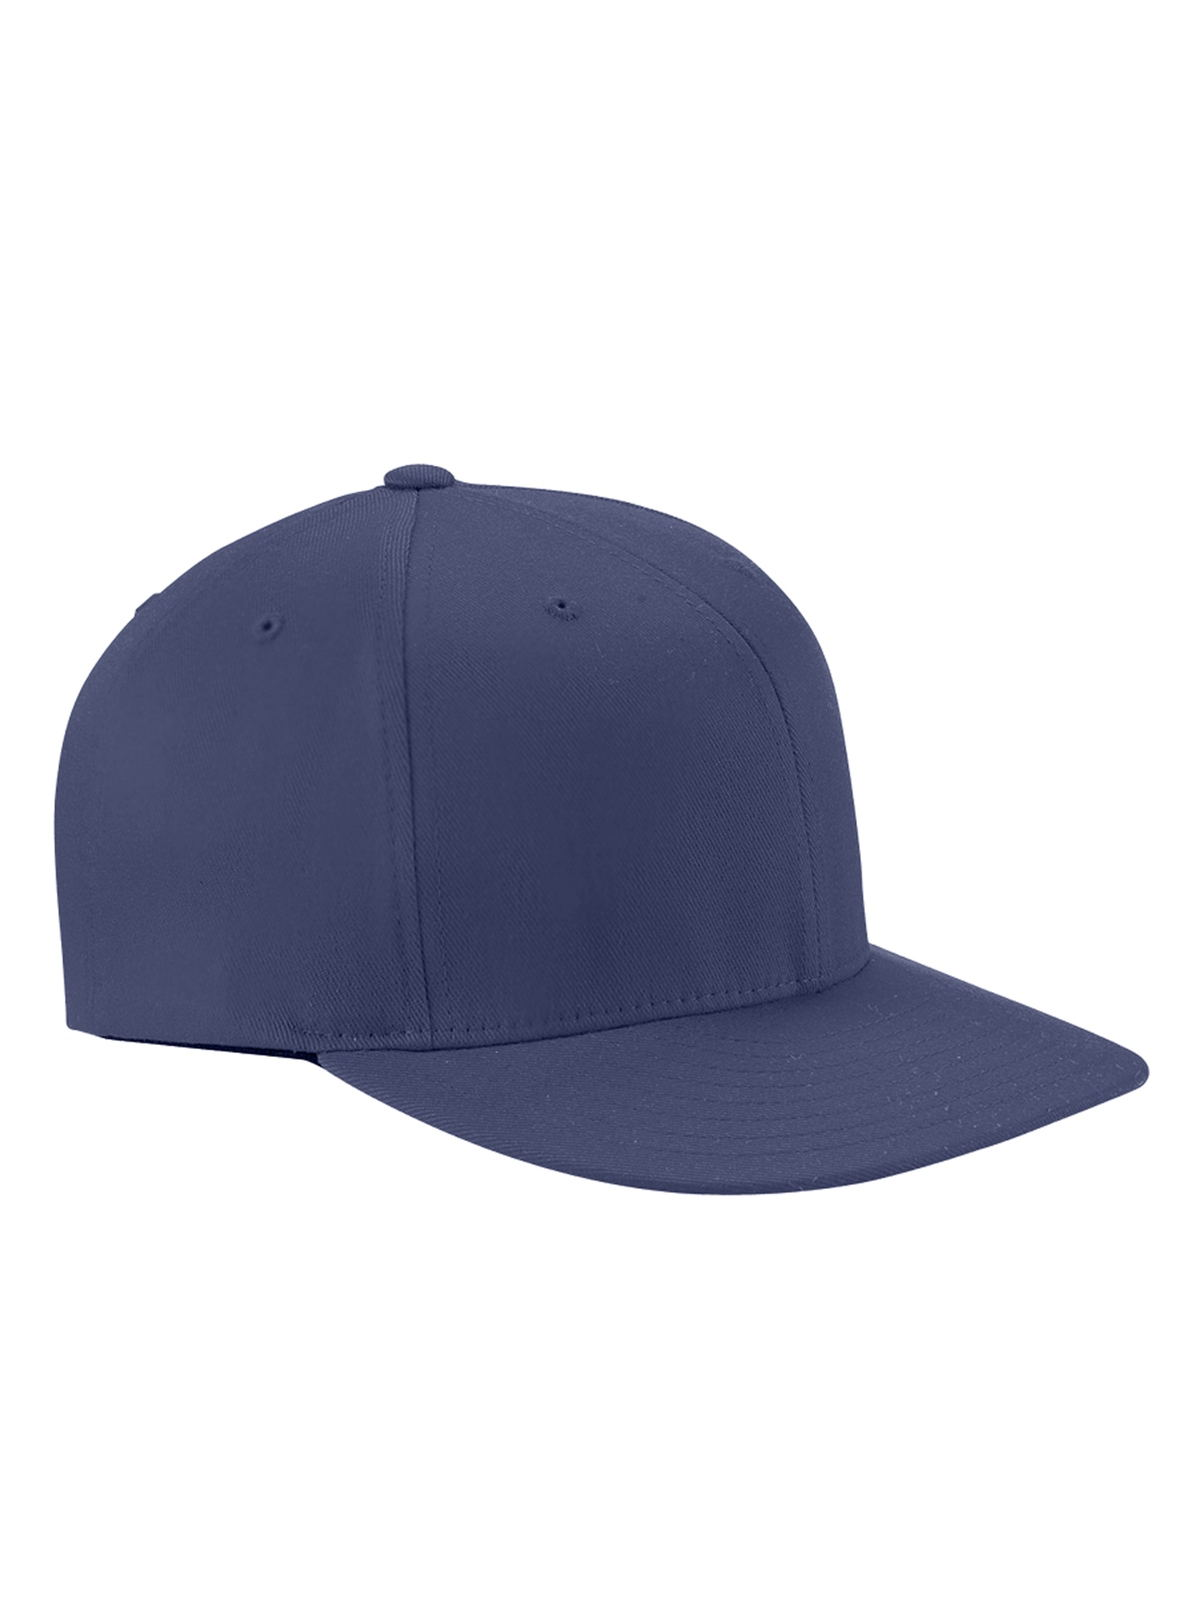 Flexfit 6297F - Pro-Baseball On Field Cap